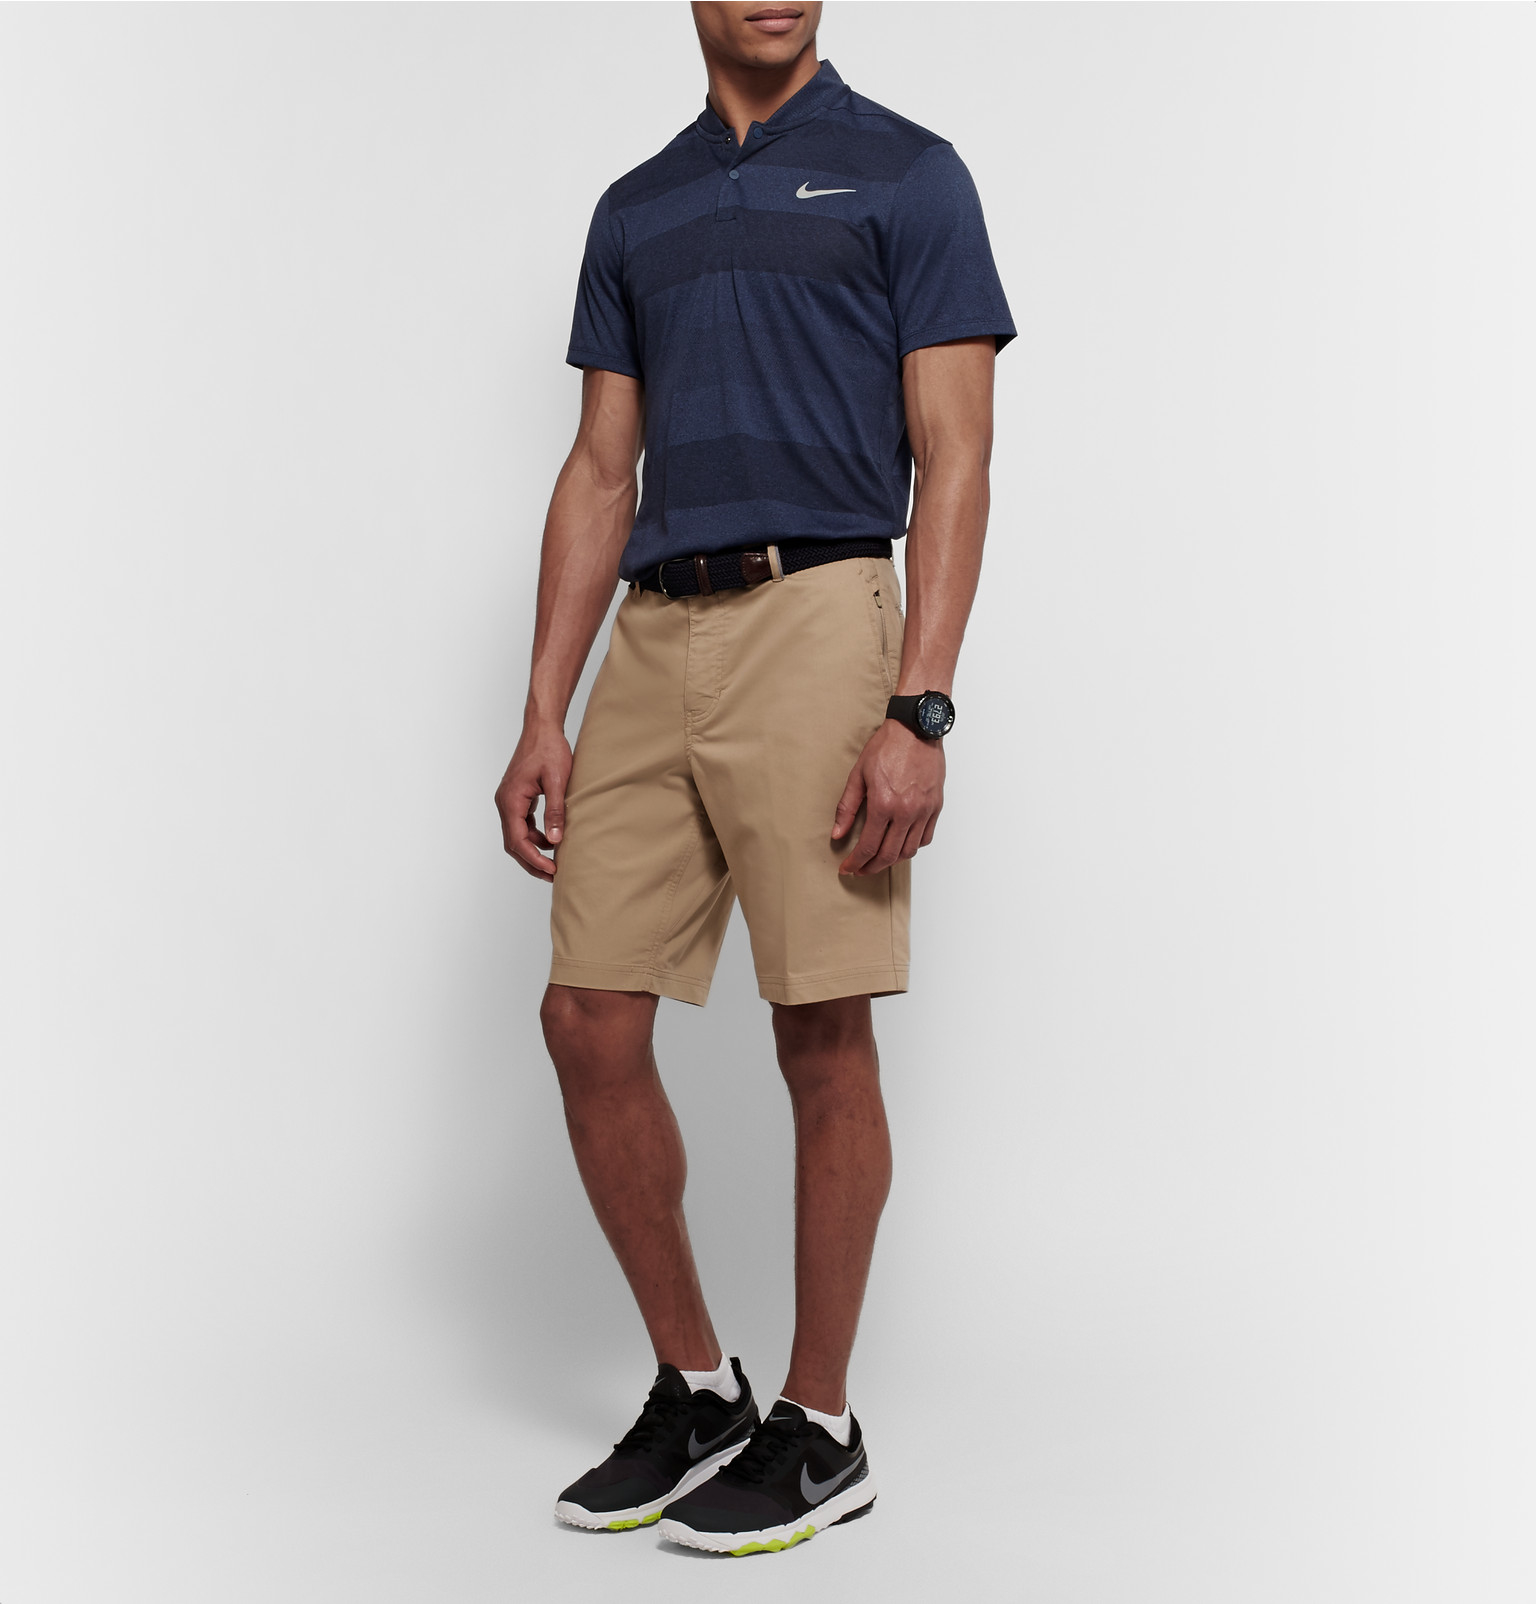 Nike Synthetic Mm Fly Blade Striped Dri-fit Jacquard-knit Polo Shirt in Navy (Blue) for Men